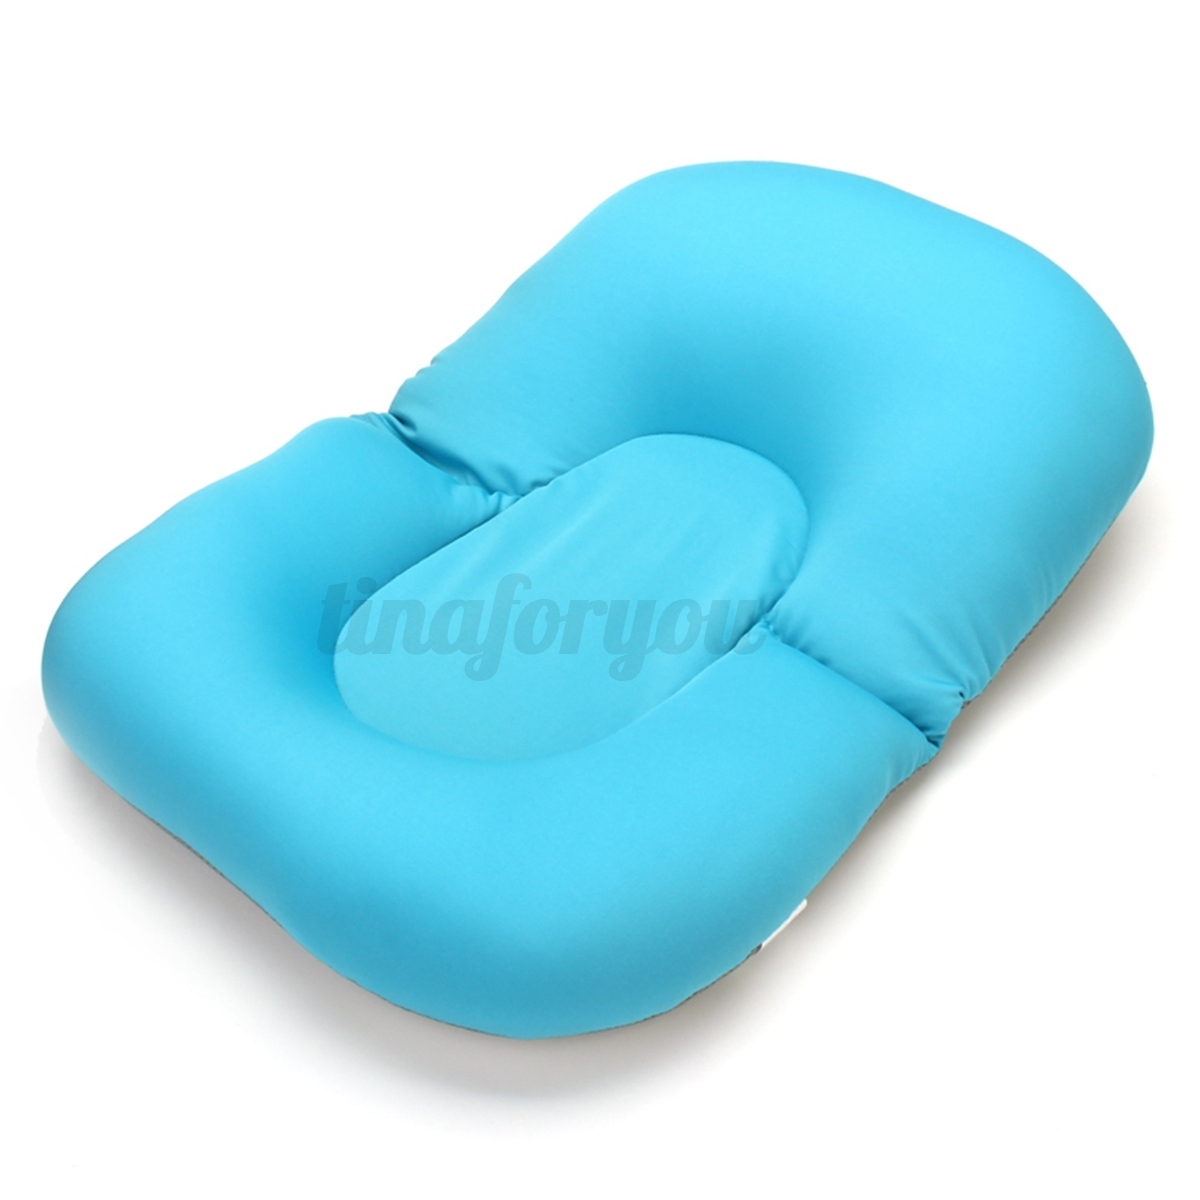 baby bath pillow uk - 28 images - baby bathtub seat best spa pillow ...